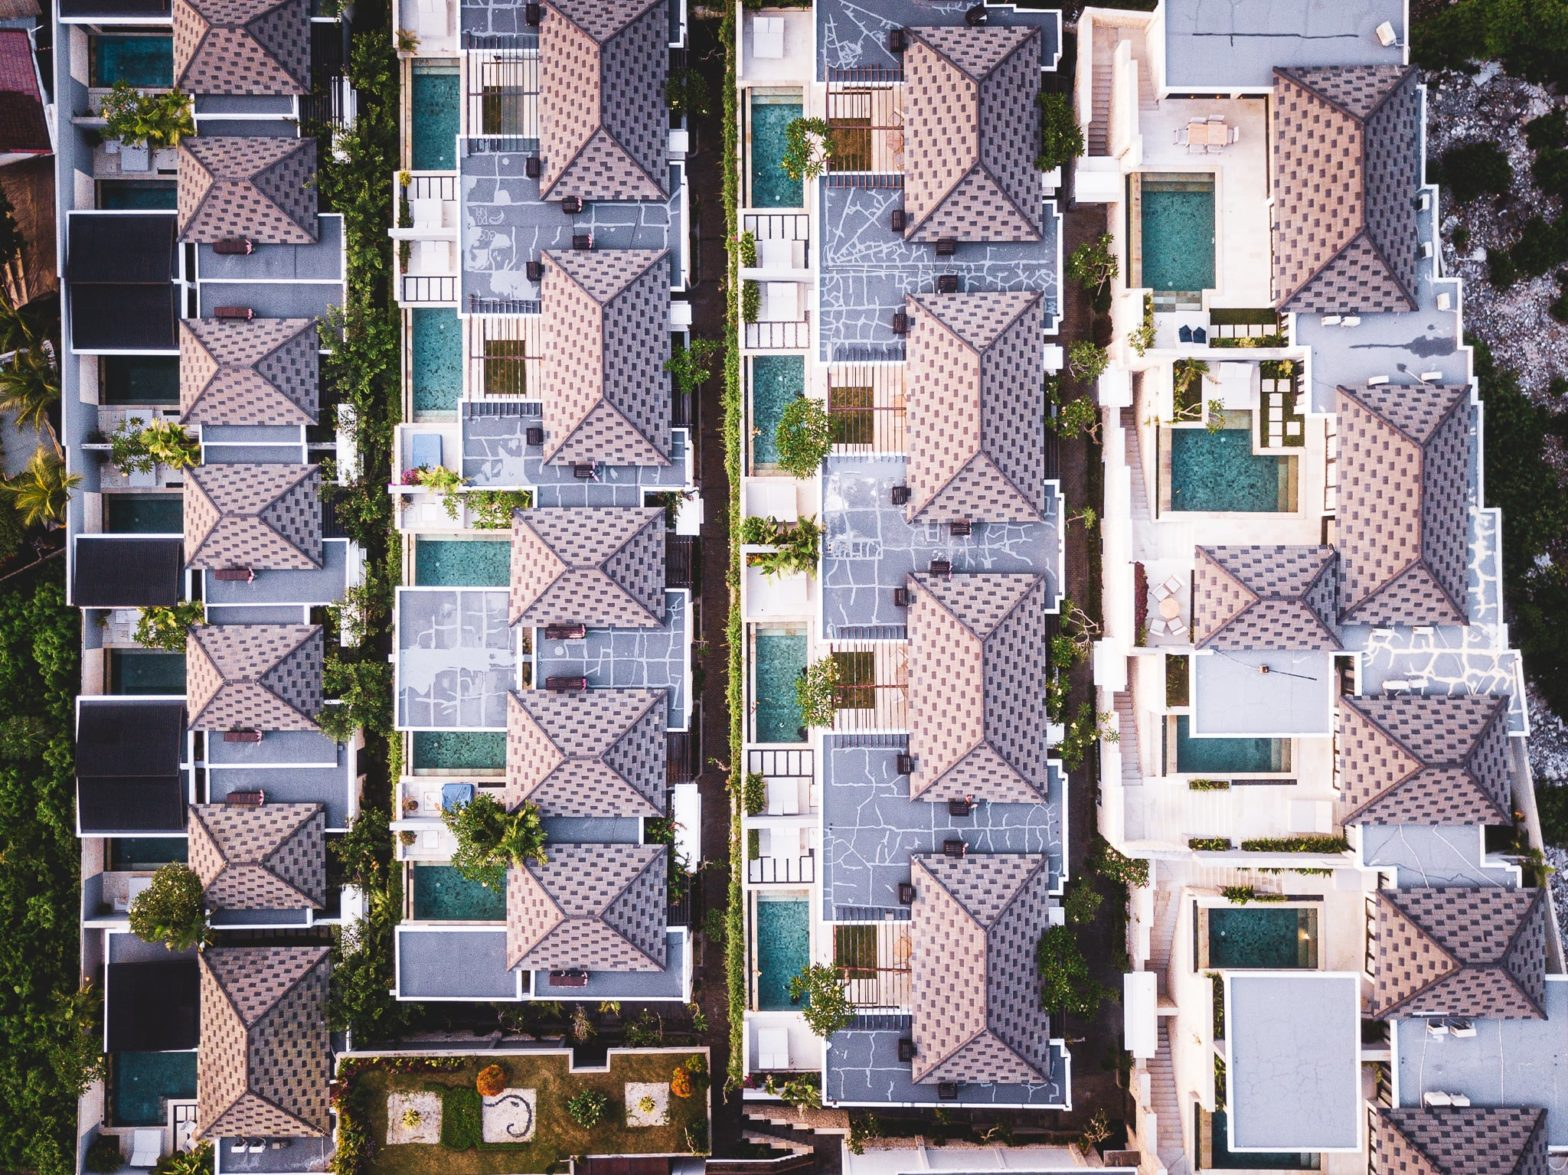 Rooftops of a tropical resort